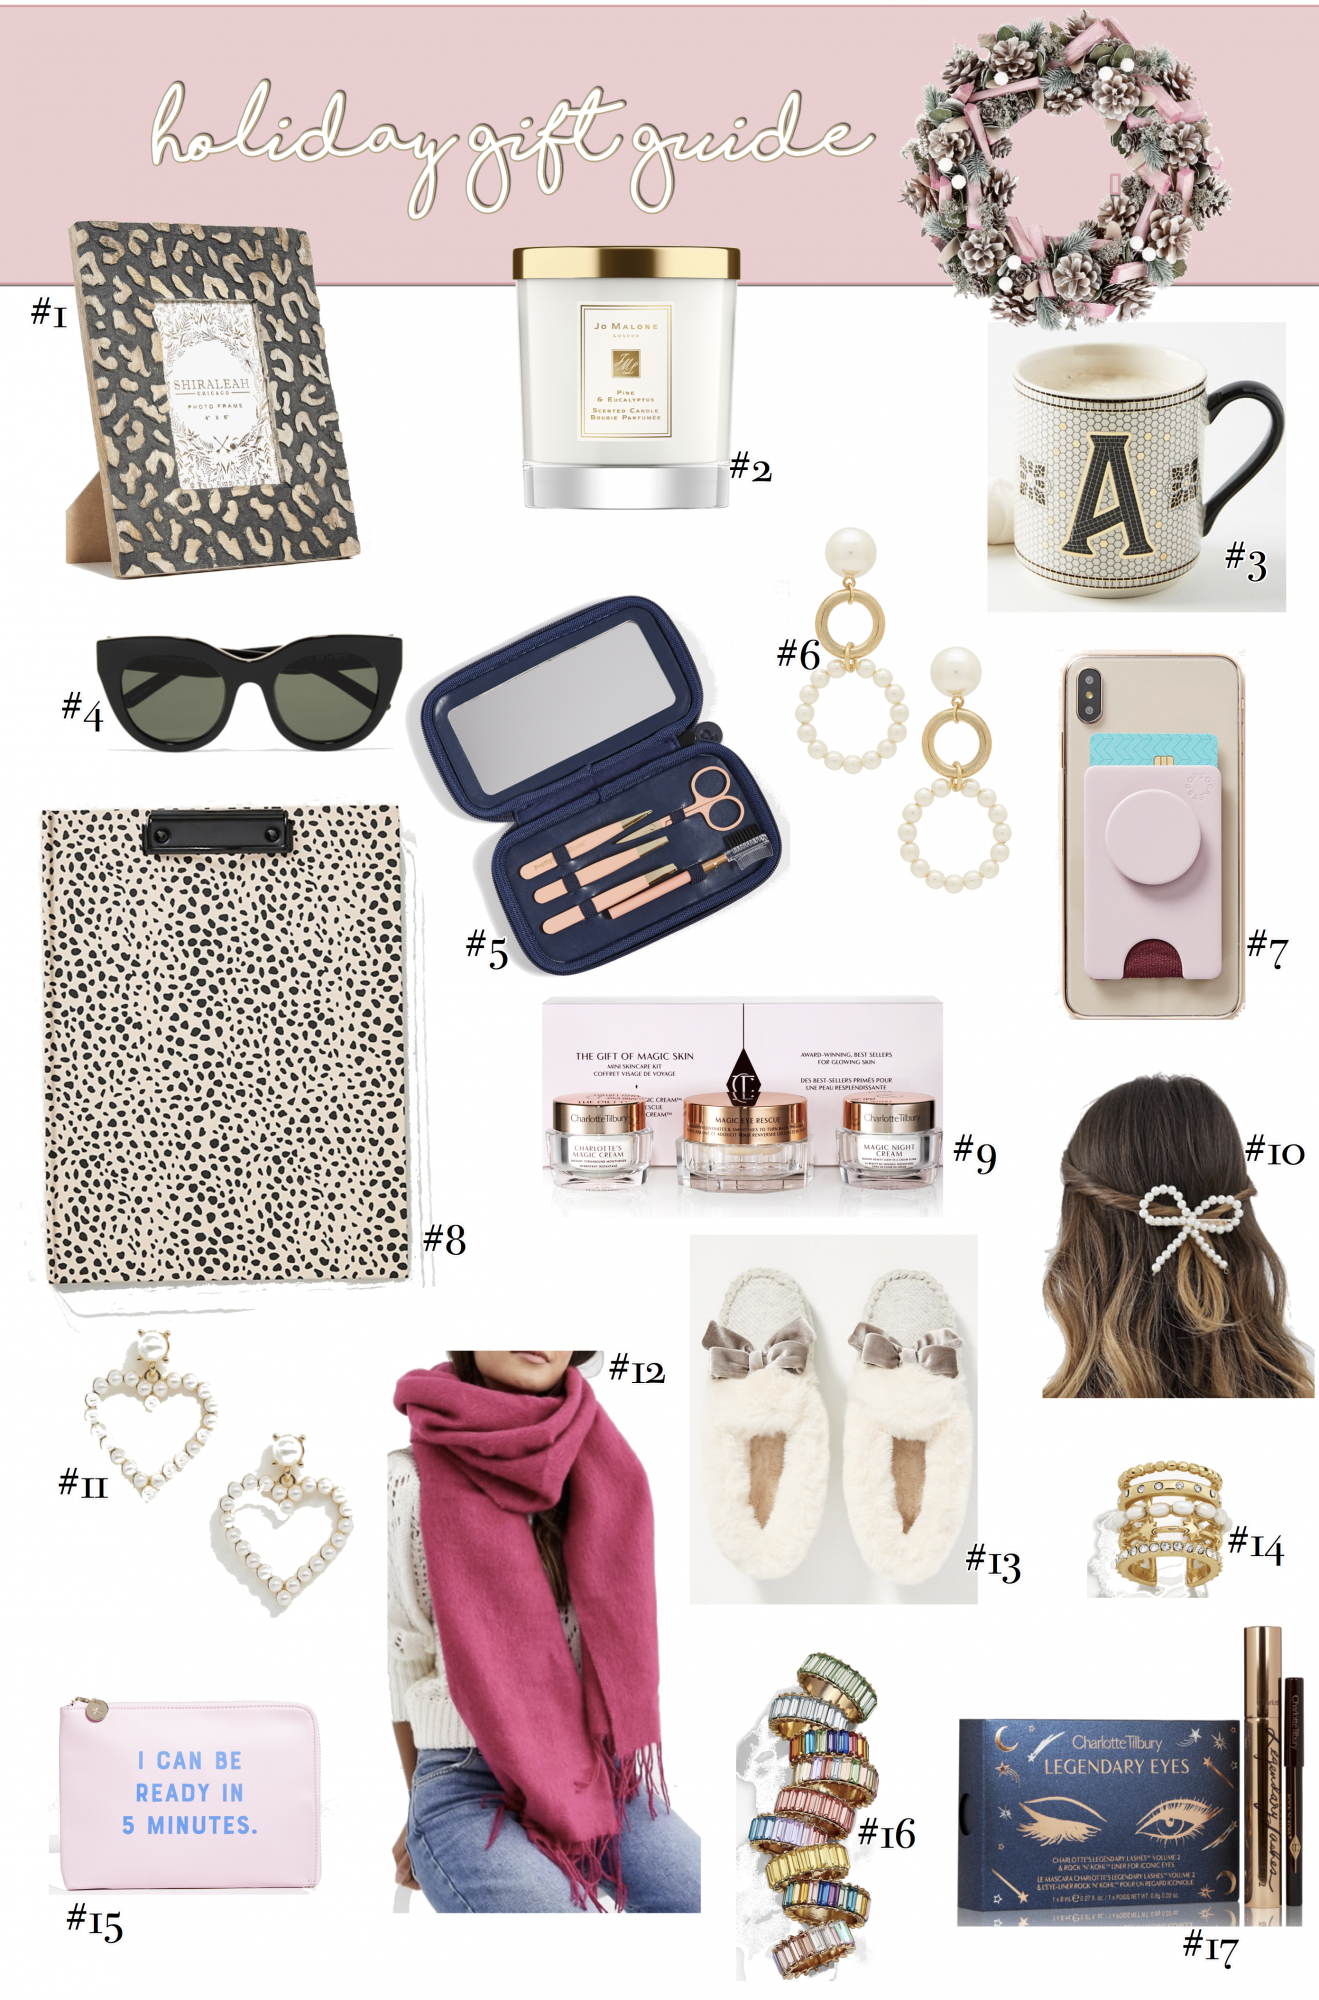 Top 17 Unique Gifts for Her, a Holiday gift guide featured by top US life and style blog, The Sweetest Thing. Christmas gift ideas 2019, Christmas gift guide, best holiday Christmas gifts women, gift ideas Christmas bloggers, Emily ann gemma